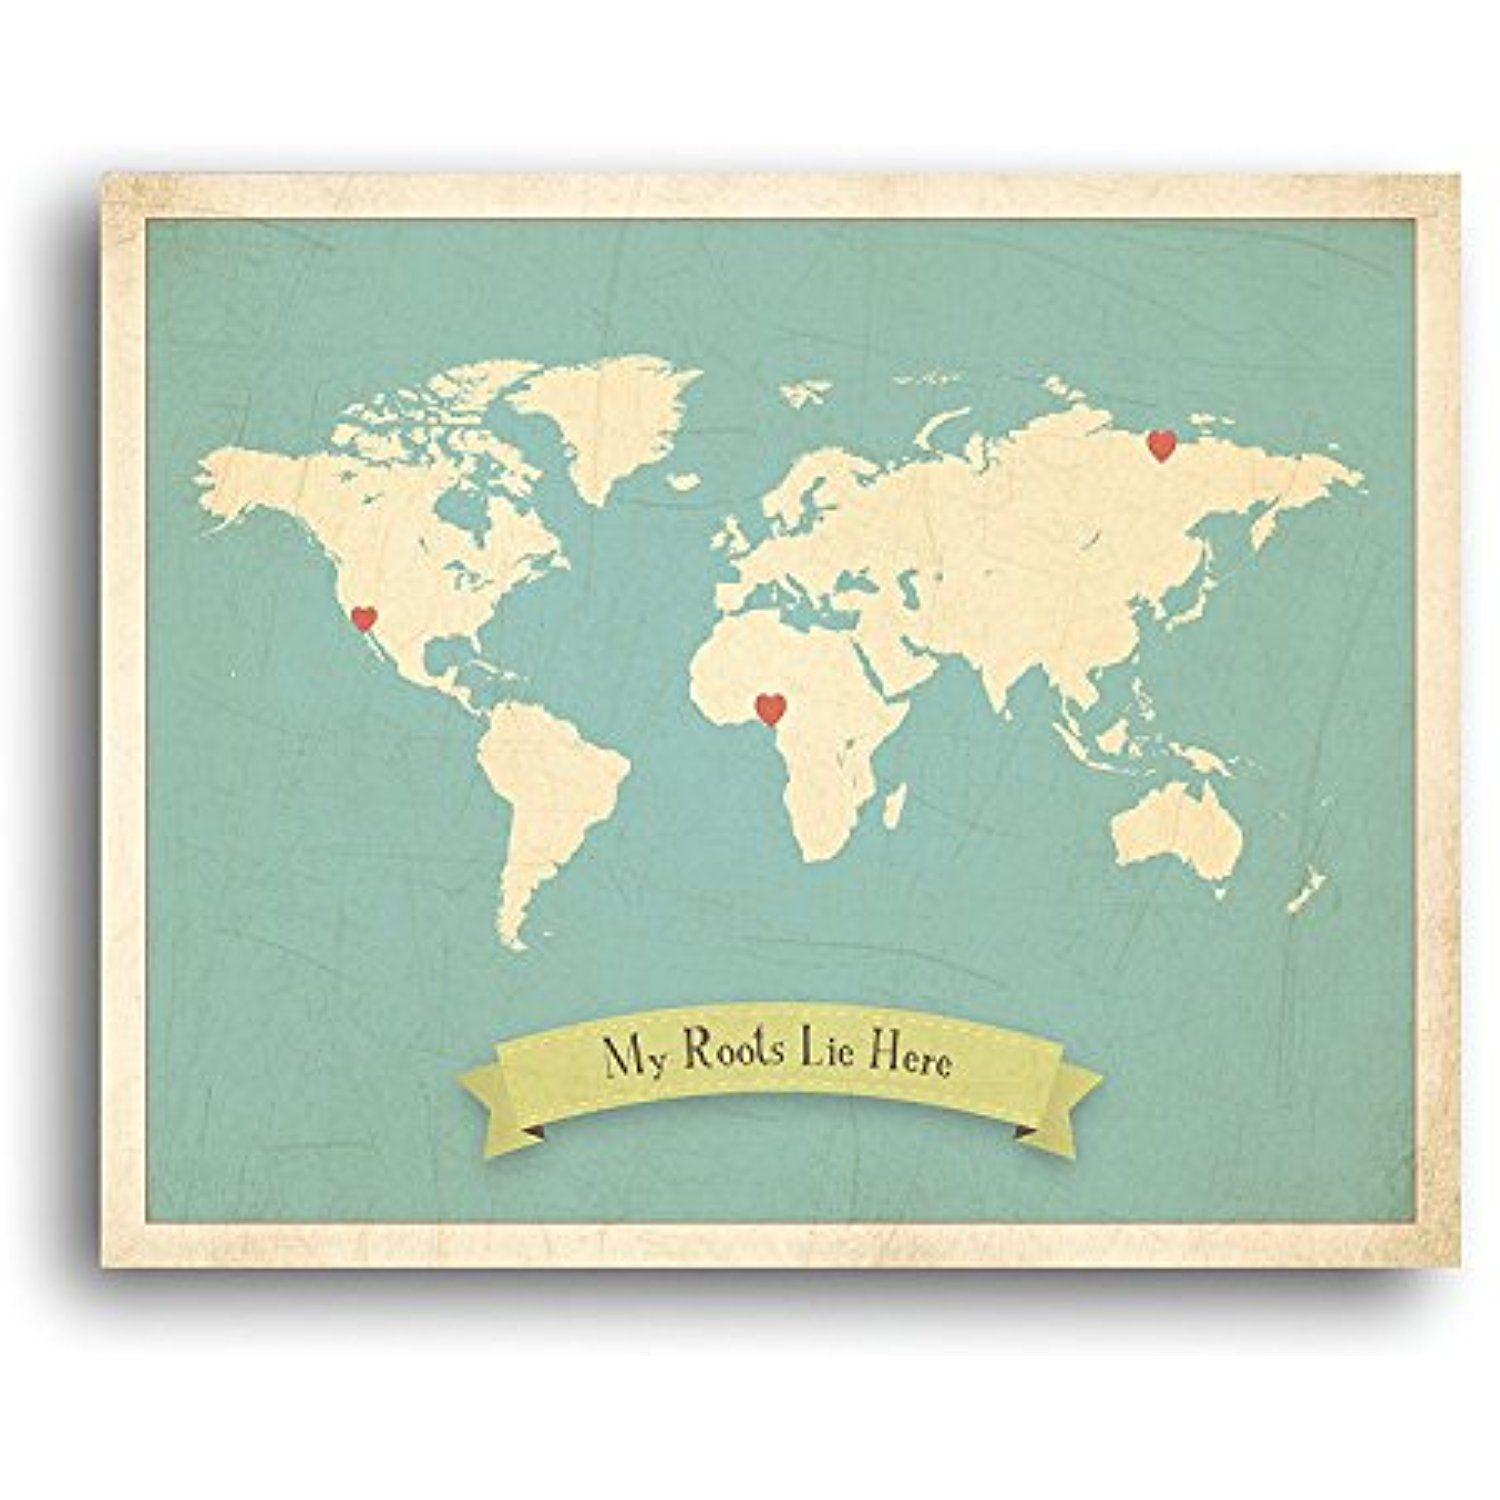 My roots personalized world map 16x20 inch canvas kids world map my roots personalized world map 16x20 inch canvas kids world map wall art childrens gumiabroncs Gallery